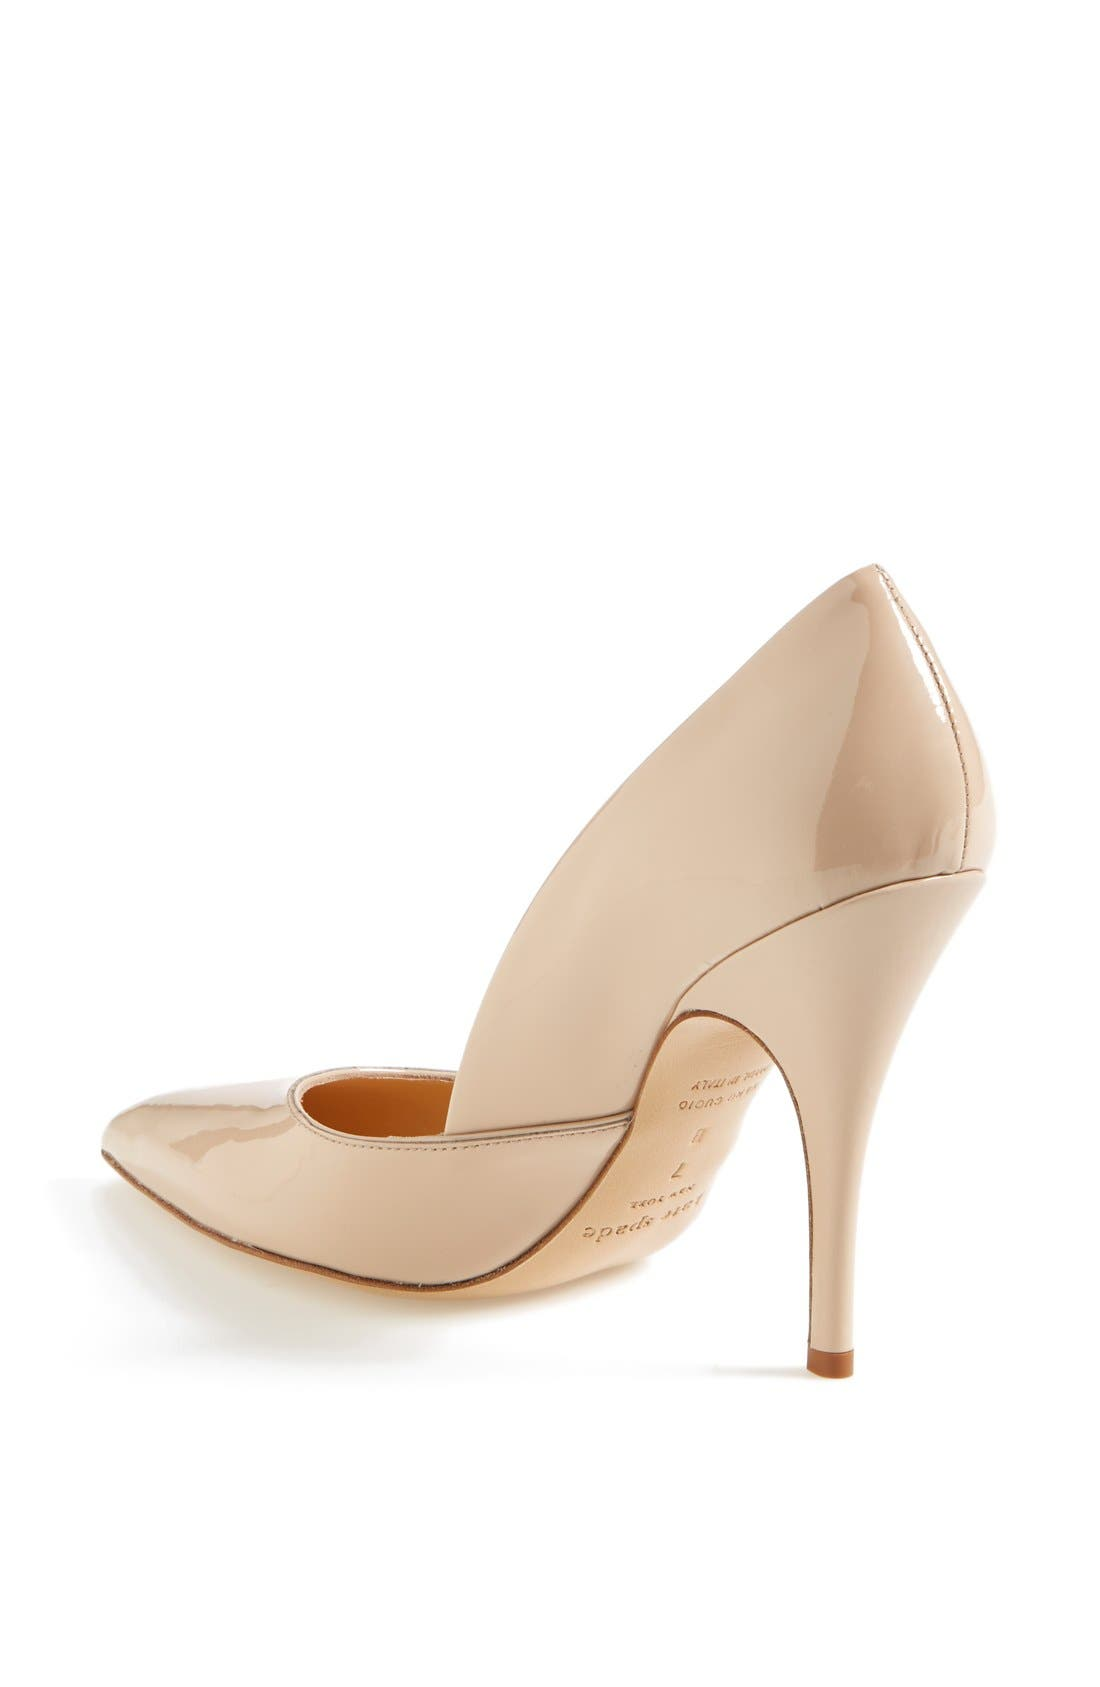 Alternate Image 2  - kate spade new york 'lottie' pump (Women)